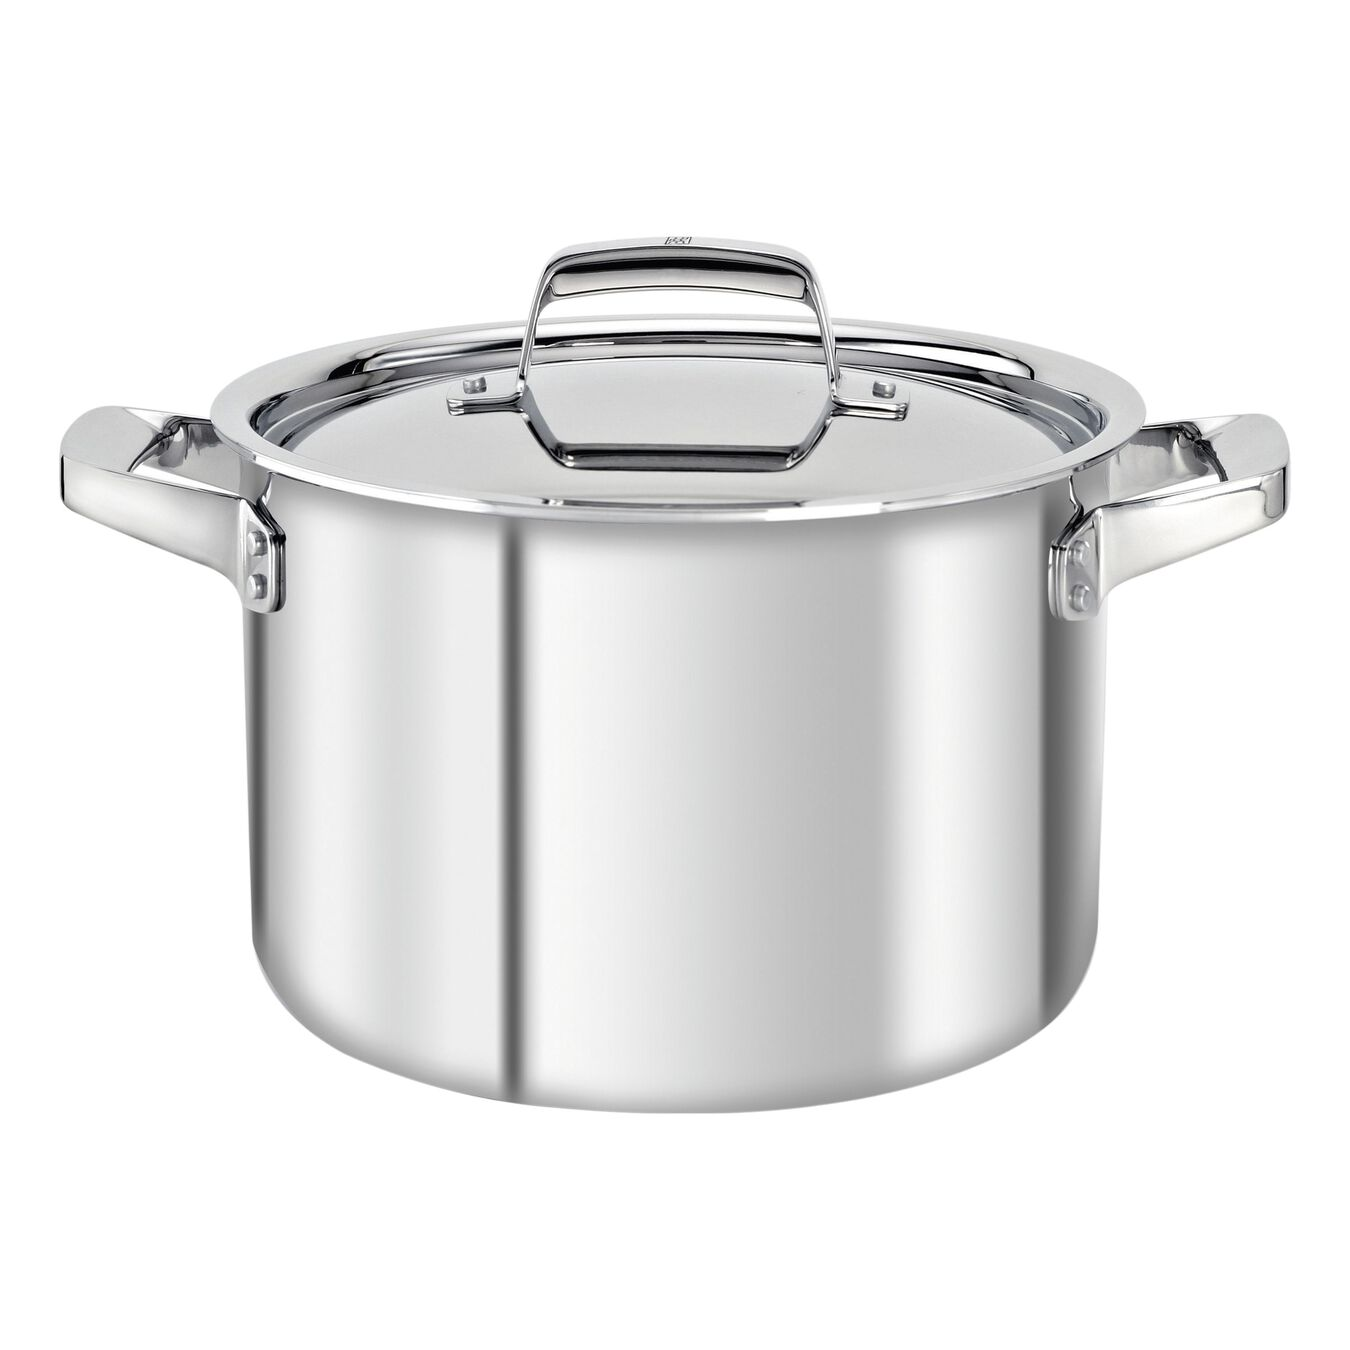 7.75 l 18/10 Stainless Steel Stock pot,,large 1